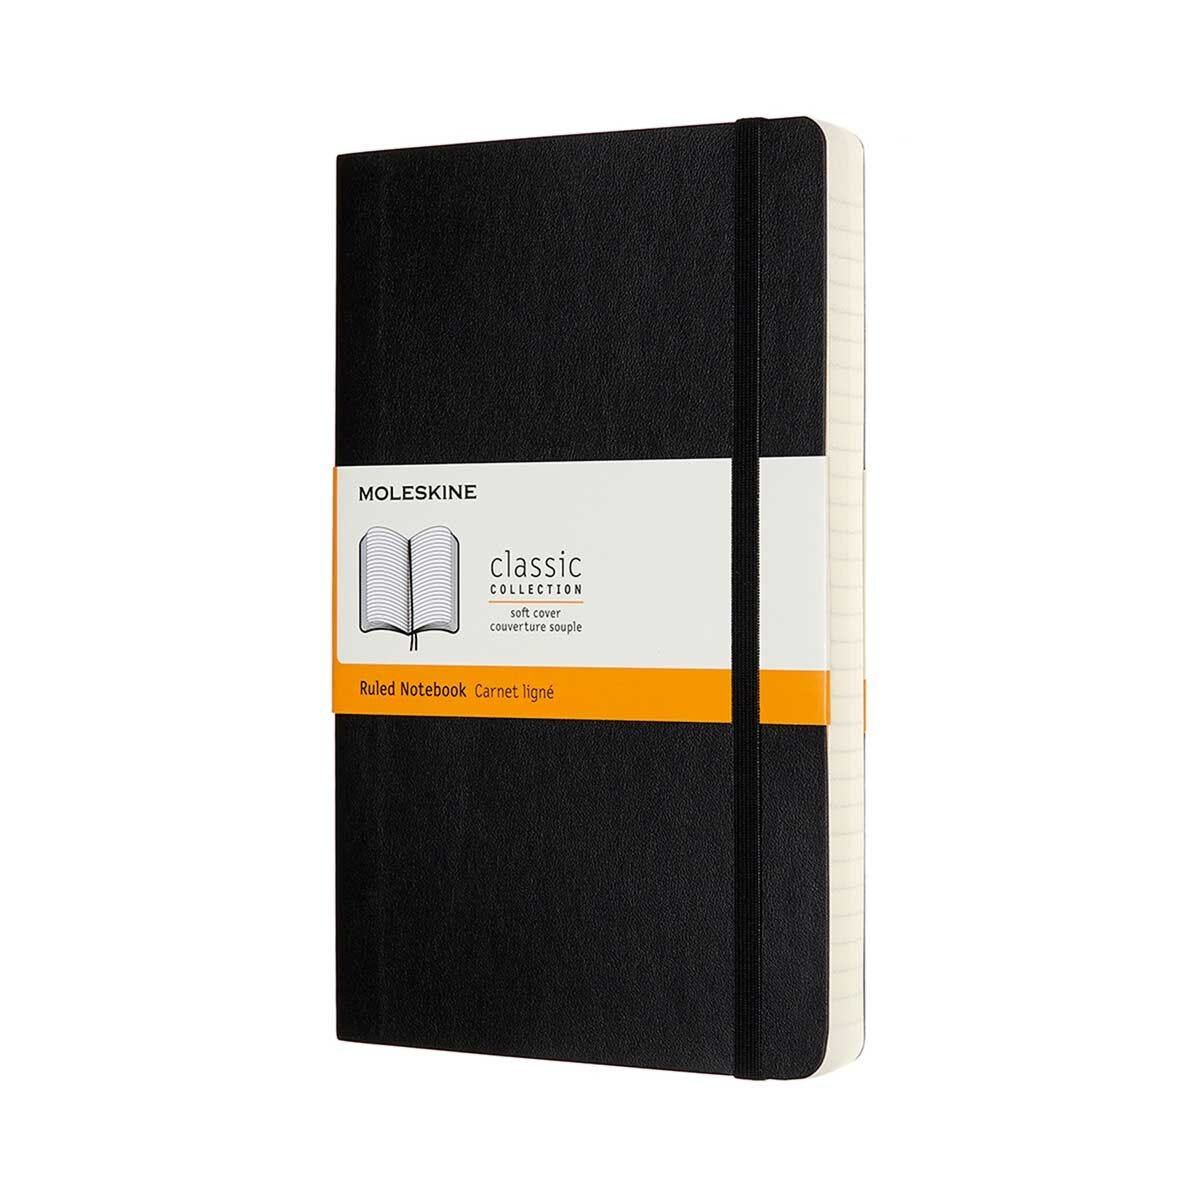 Moleskine Classic Expanded Soft Cover Notebook Large Ruled